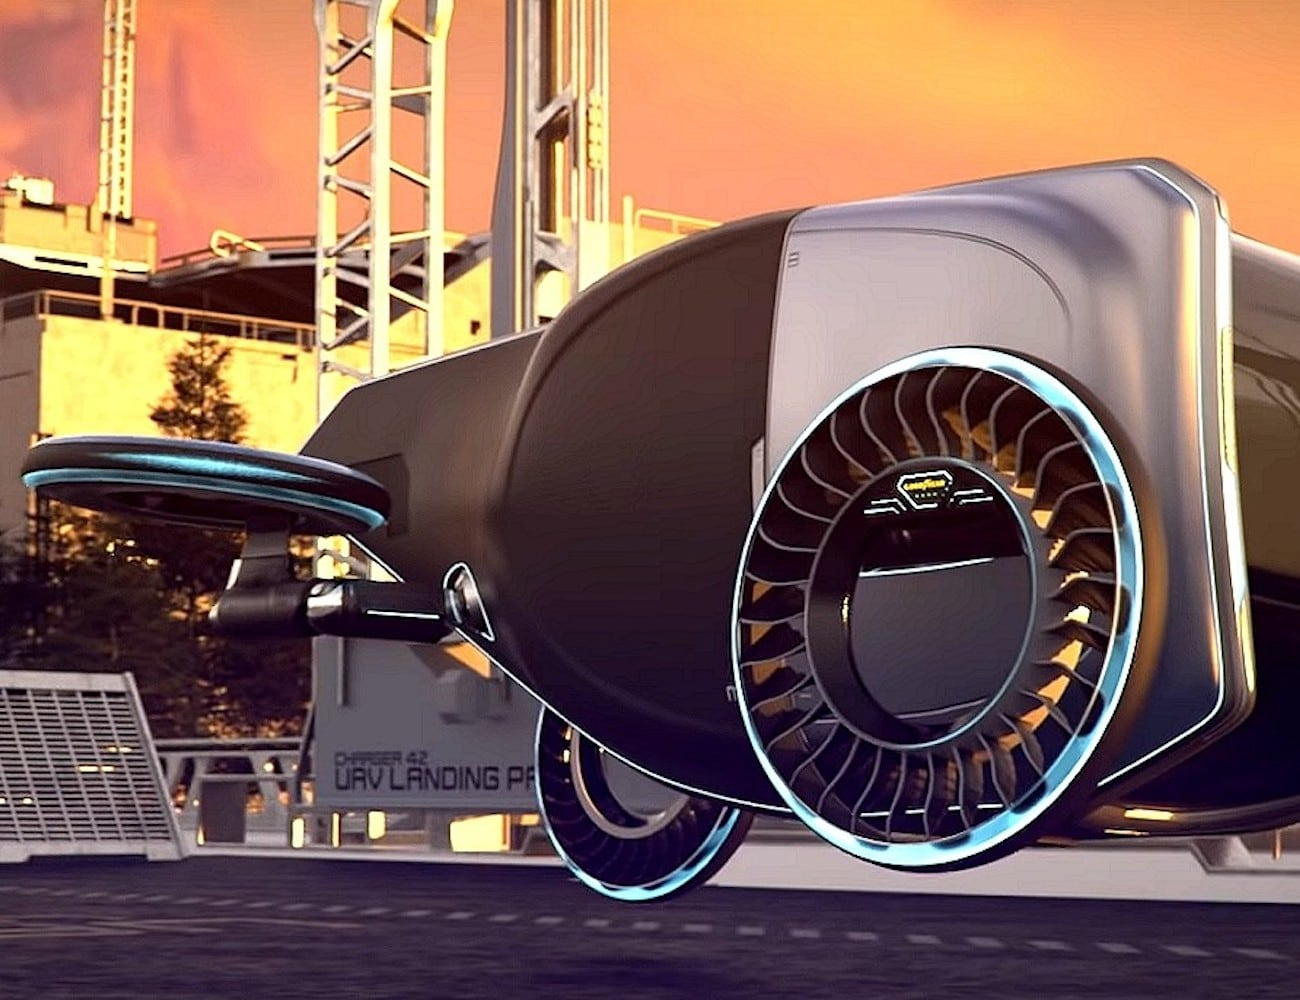 Goodyear AERO Flying Car Concept Tire works on the road and in the sky